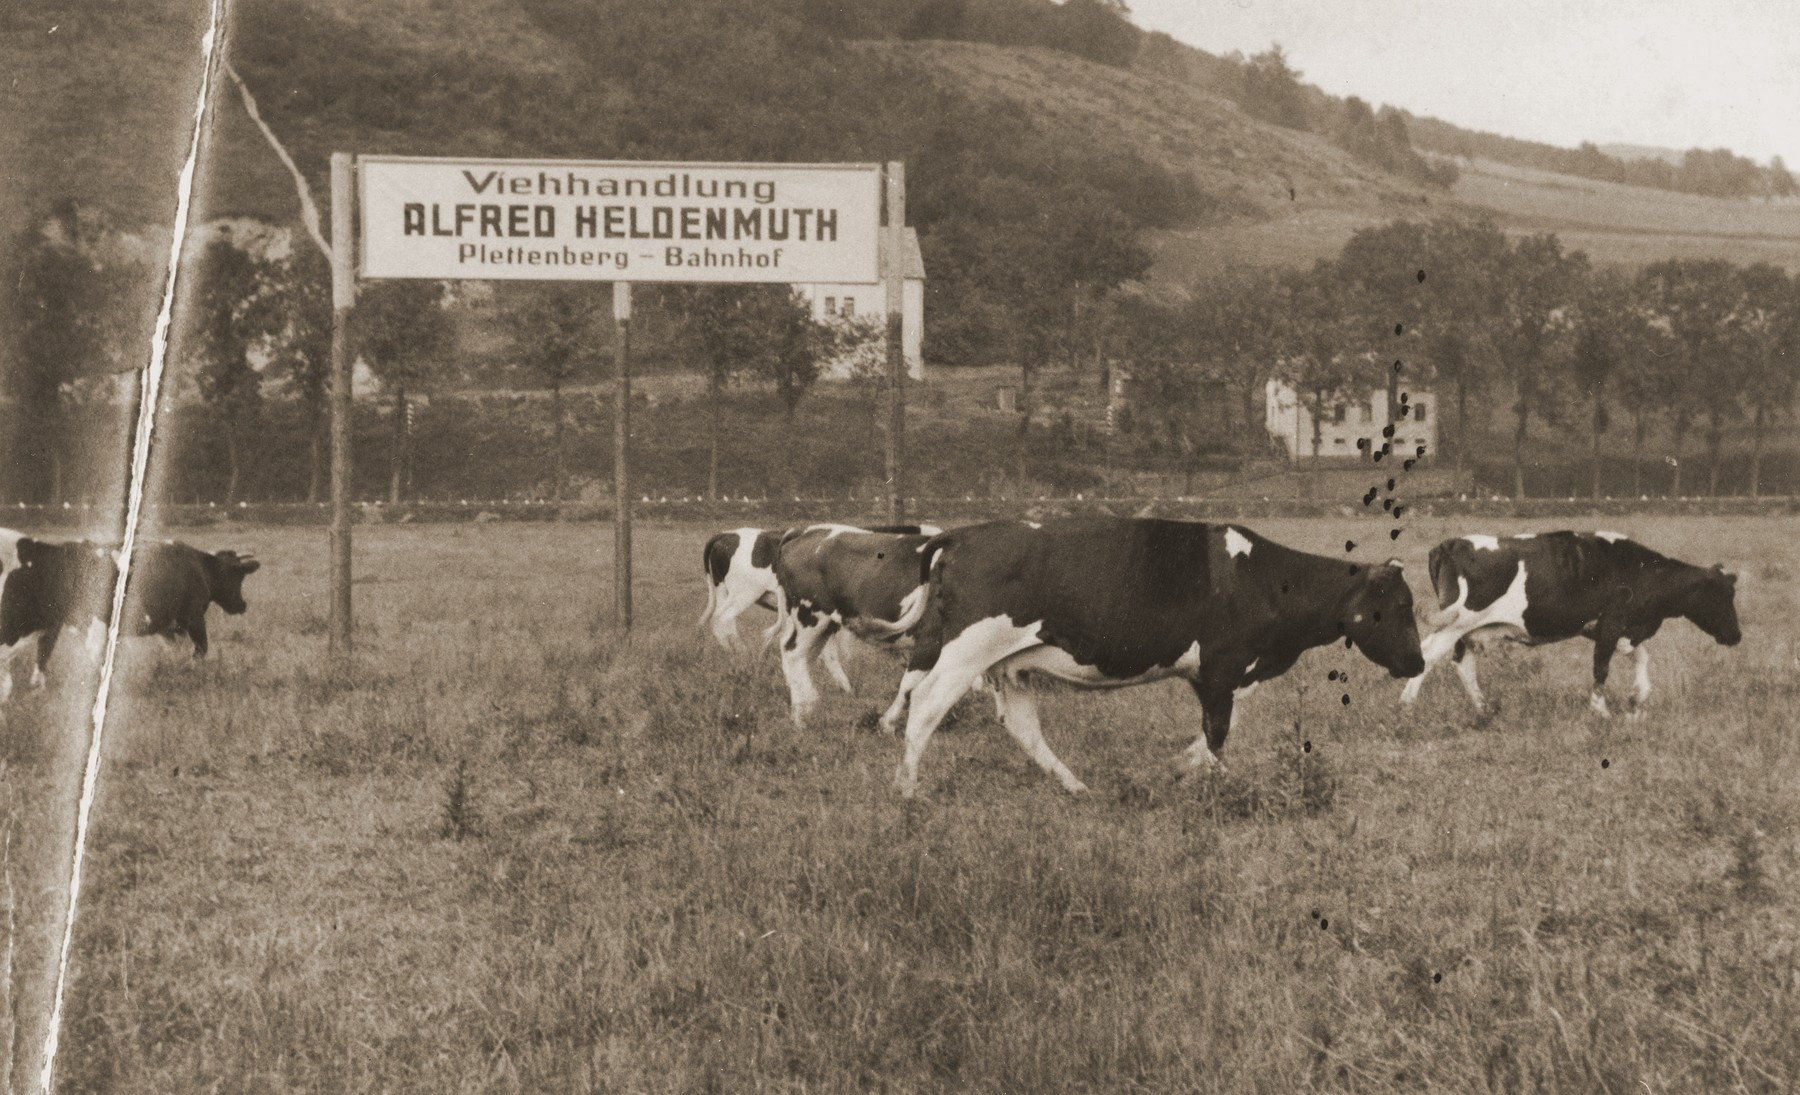 Cows belonging to Alfred Heldenmuth graze in a field beneath a sign advertising his cattle business in Plettenberg.